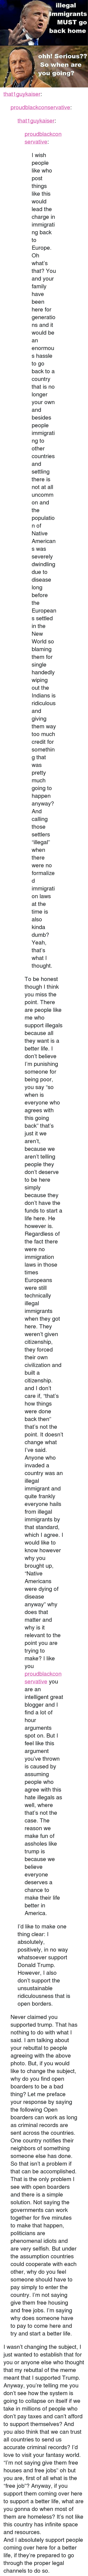 """boarders: illegal  mmigrants  MUST go  back home  ohh! Serious?2  So when are  you going? <p><a href=""""http://that1guykaiser.tumblr.com/post/130065420044/proudblackconservative-that1guykaiser"""" class=""""tumblr_blog"""">that1guykaiser</a>:</p><blockquote> <p><a href=""""http://proudblackconservative.tumblr.com/post/130065086209/that1guykaiser-proudblackconservative-i-wish"""" class=""""tumblr_blog"""">proudblackconservative</a>:</p>  <blockquote> <p><a href=""""http://that1guykaiser.tumblr.com/post/130064666374/proudblackconservative-i-wish-people-like-who"""" class=""""tumblr_blog"""">that1guykaiser</a>:</p>  <blockquote> <p><a href=""""http://proudblackconservative.tumblr.com/post/130014450389/i-wish-people-like-who-post-things-like-this-would"""" class=""""tumblr_blog"""">proudblackconservative</a>:</p>  <blockquote> <p>I wish people like who post things like this would lead the charge in immigrating back to Europe. Oh what's that? You and your family have been here for generations and it would be an enormous hassle to go back to a country that is no longer your own and besides people immigrating to other countries and settling there is not at all uncommon and the population of Native Americans was severely dwindling due to disease long before the Europeans settled in the New World so blaming them for single handedly wiping out the Indians is ridiculous and giving them way too much credit for something that was pretty much going to happen anyway? And calling those settlers """"illegal"""" when there were no formalized immigration laws at the time is also kinda dumb?</p>  <p>Yeah, that's what I thought.</p> </blockquote>  <p>To be honest though I think you miss the point. There are people like me who support illegals because all they want is a better life. I don't believe I'm punishing someone for being poor, you say """"so when is everyone who agrees with this going back"""" that's just it we aren't, because we aren't telling people they don't deserve to be here simply because they don't have the funds to start a life"""